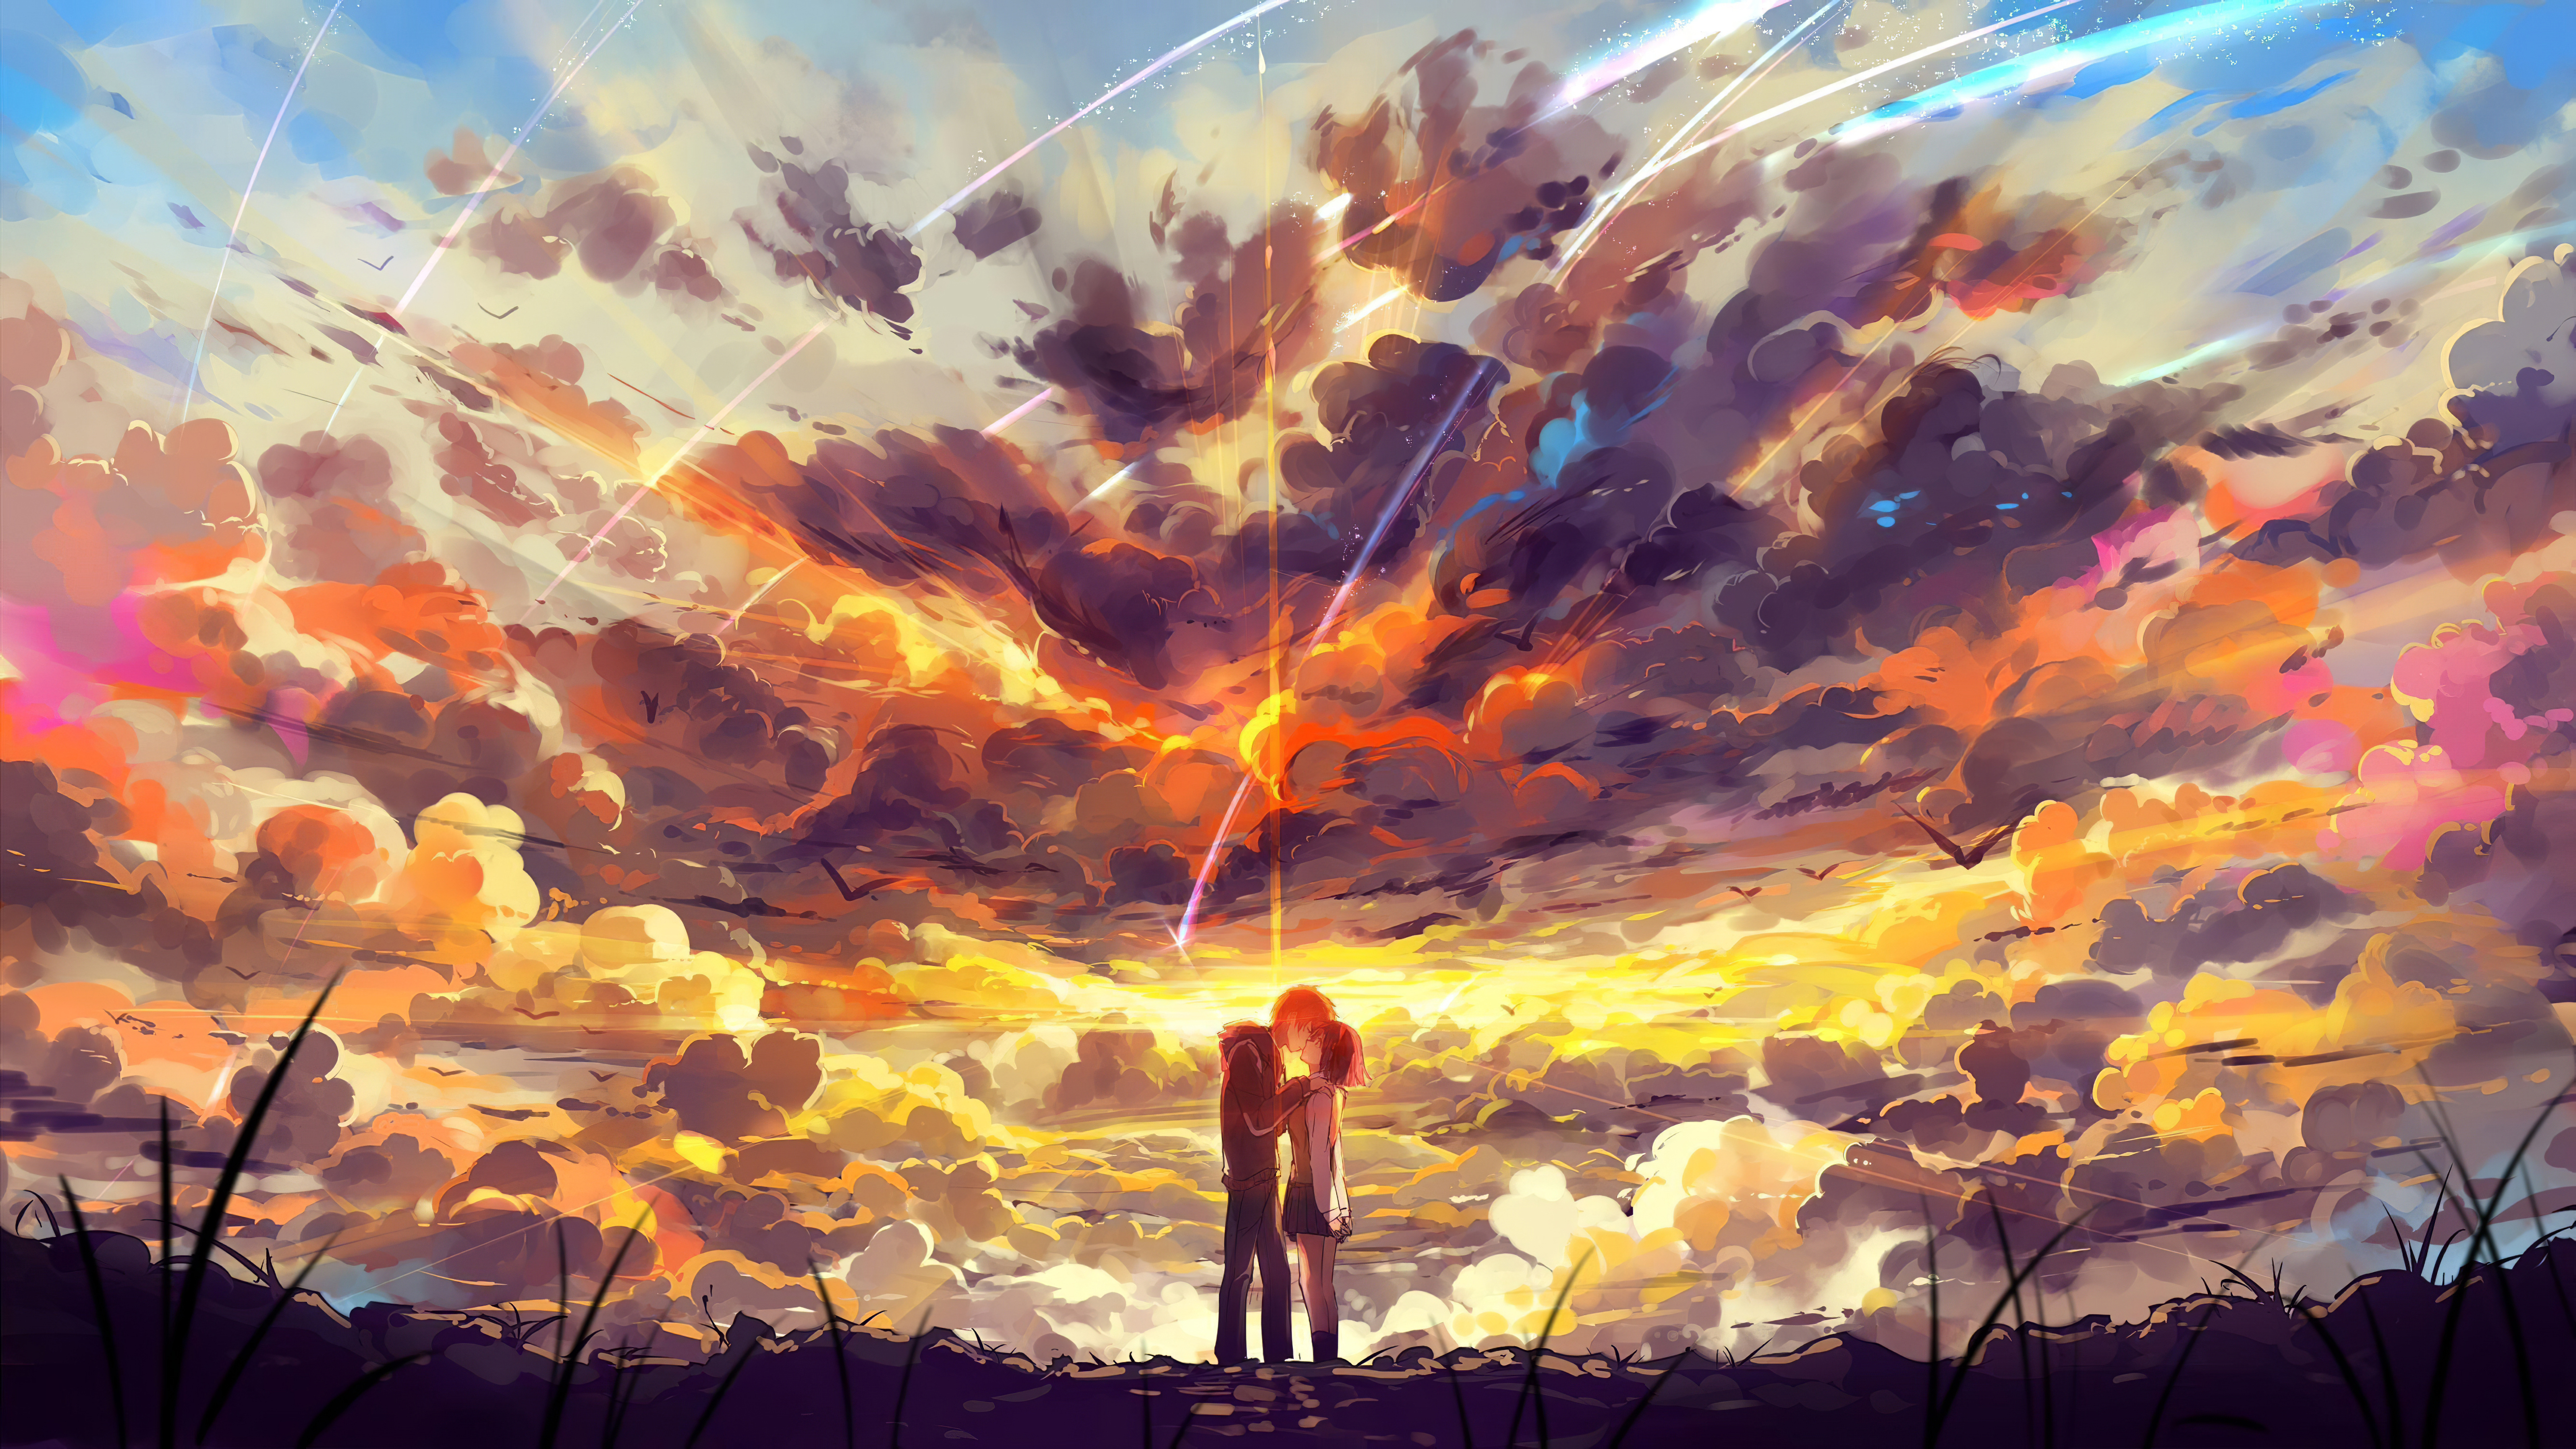 Kimi No Nawa Anime Couple 5k Hd Anime 4k Wallpapers Images Backgrounds Photos And Pictures Looking for the best kimi no na wa wallpapers? hdqwalls